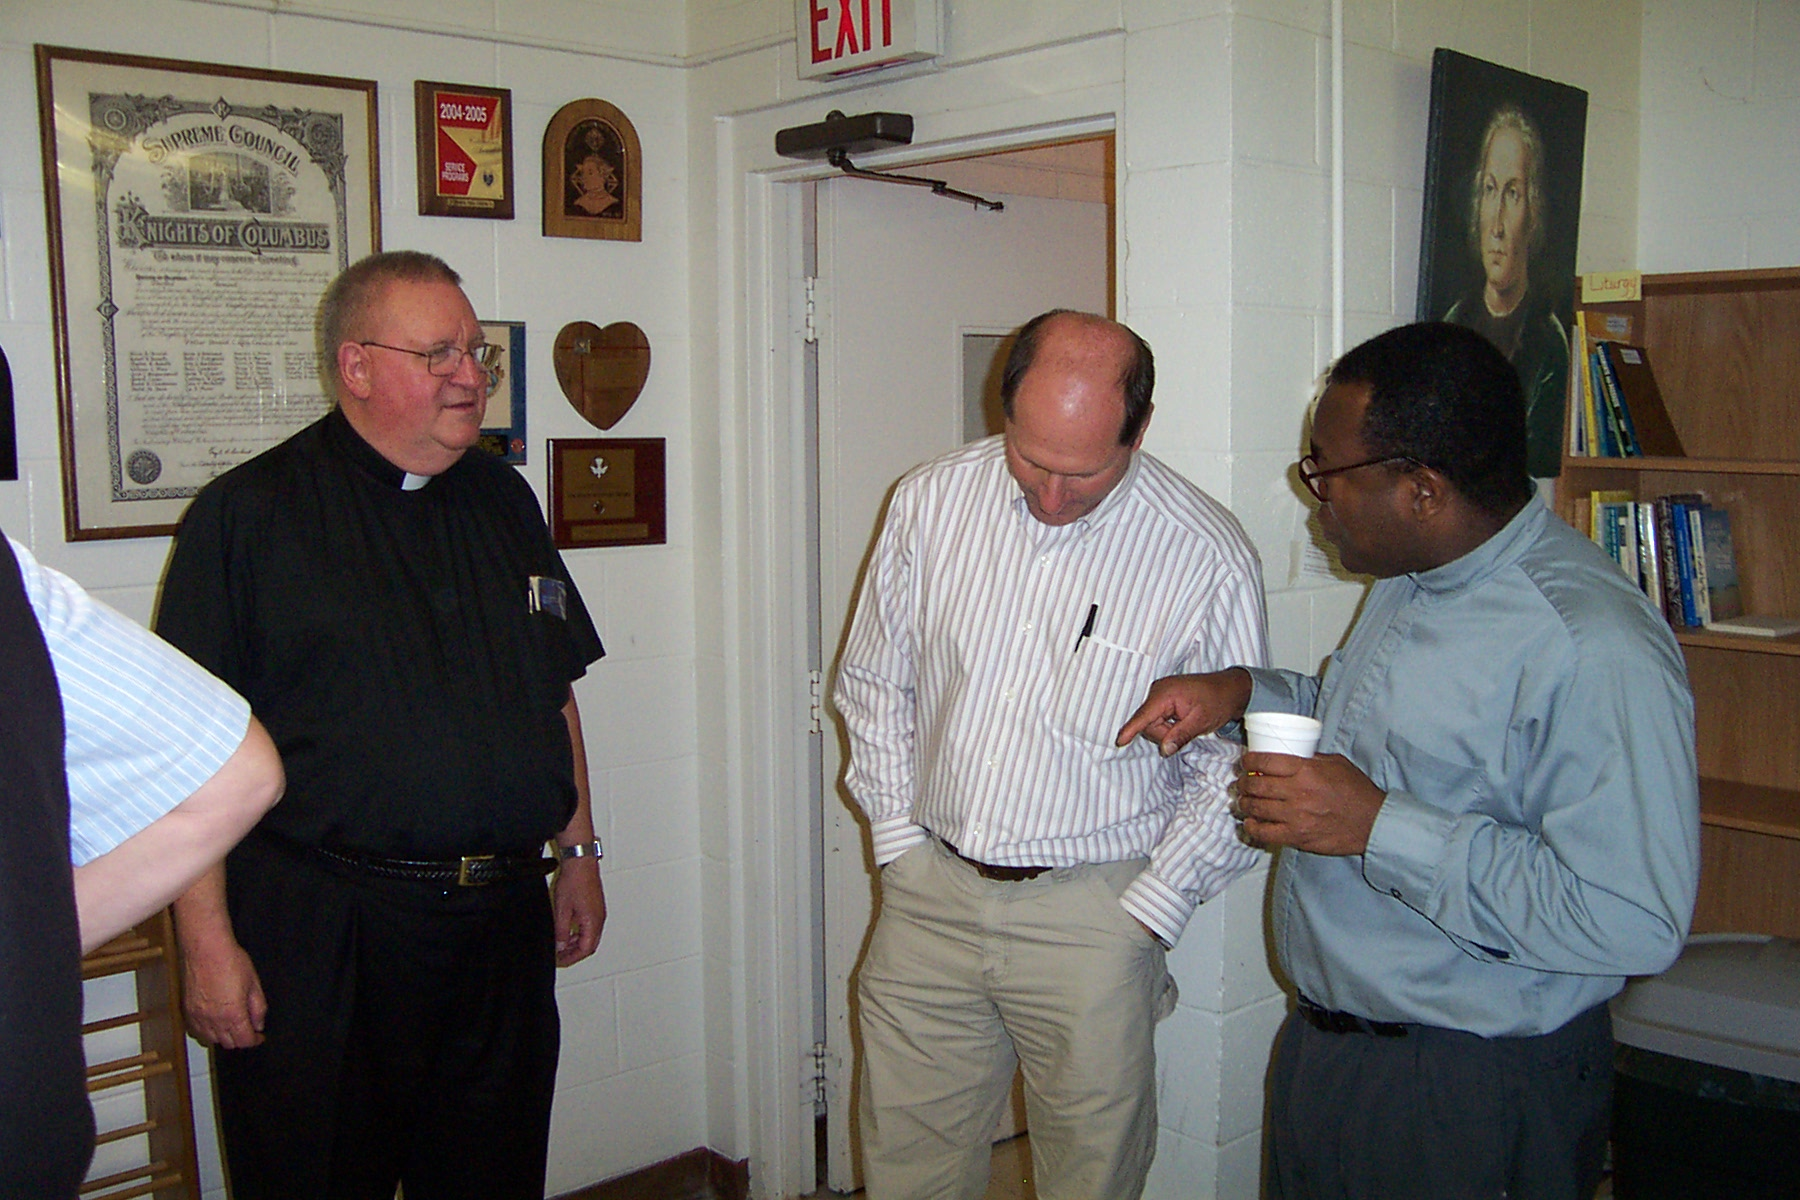 Father Frank, Guy Vanzo & Father Rome - Picture 3644